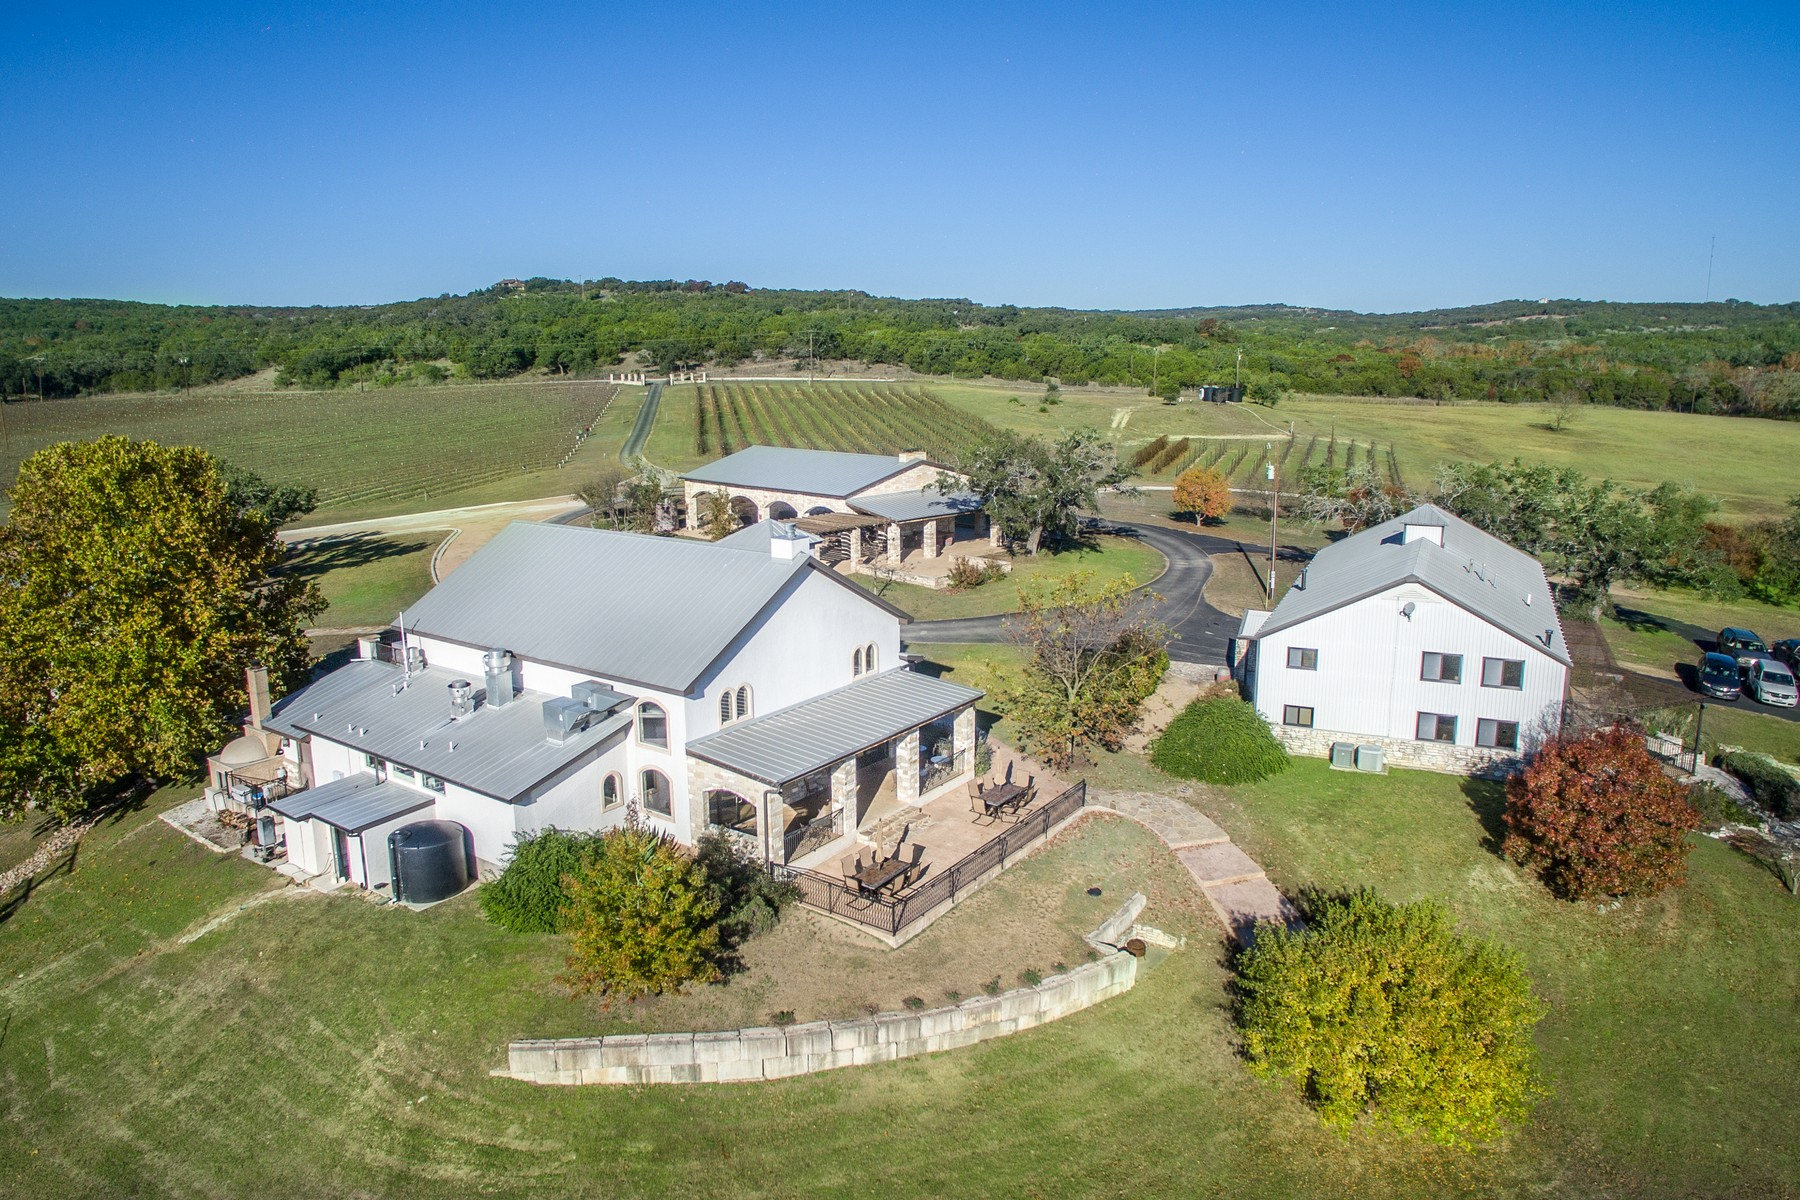 獨棟家庭住宅 為 出售 在 The Crown Jewel of Texas Wineries 24912 Singleton Bend East Rd, Marble Falls, 德克薩斯州, 78654 美國